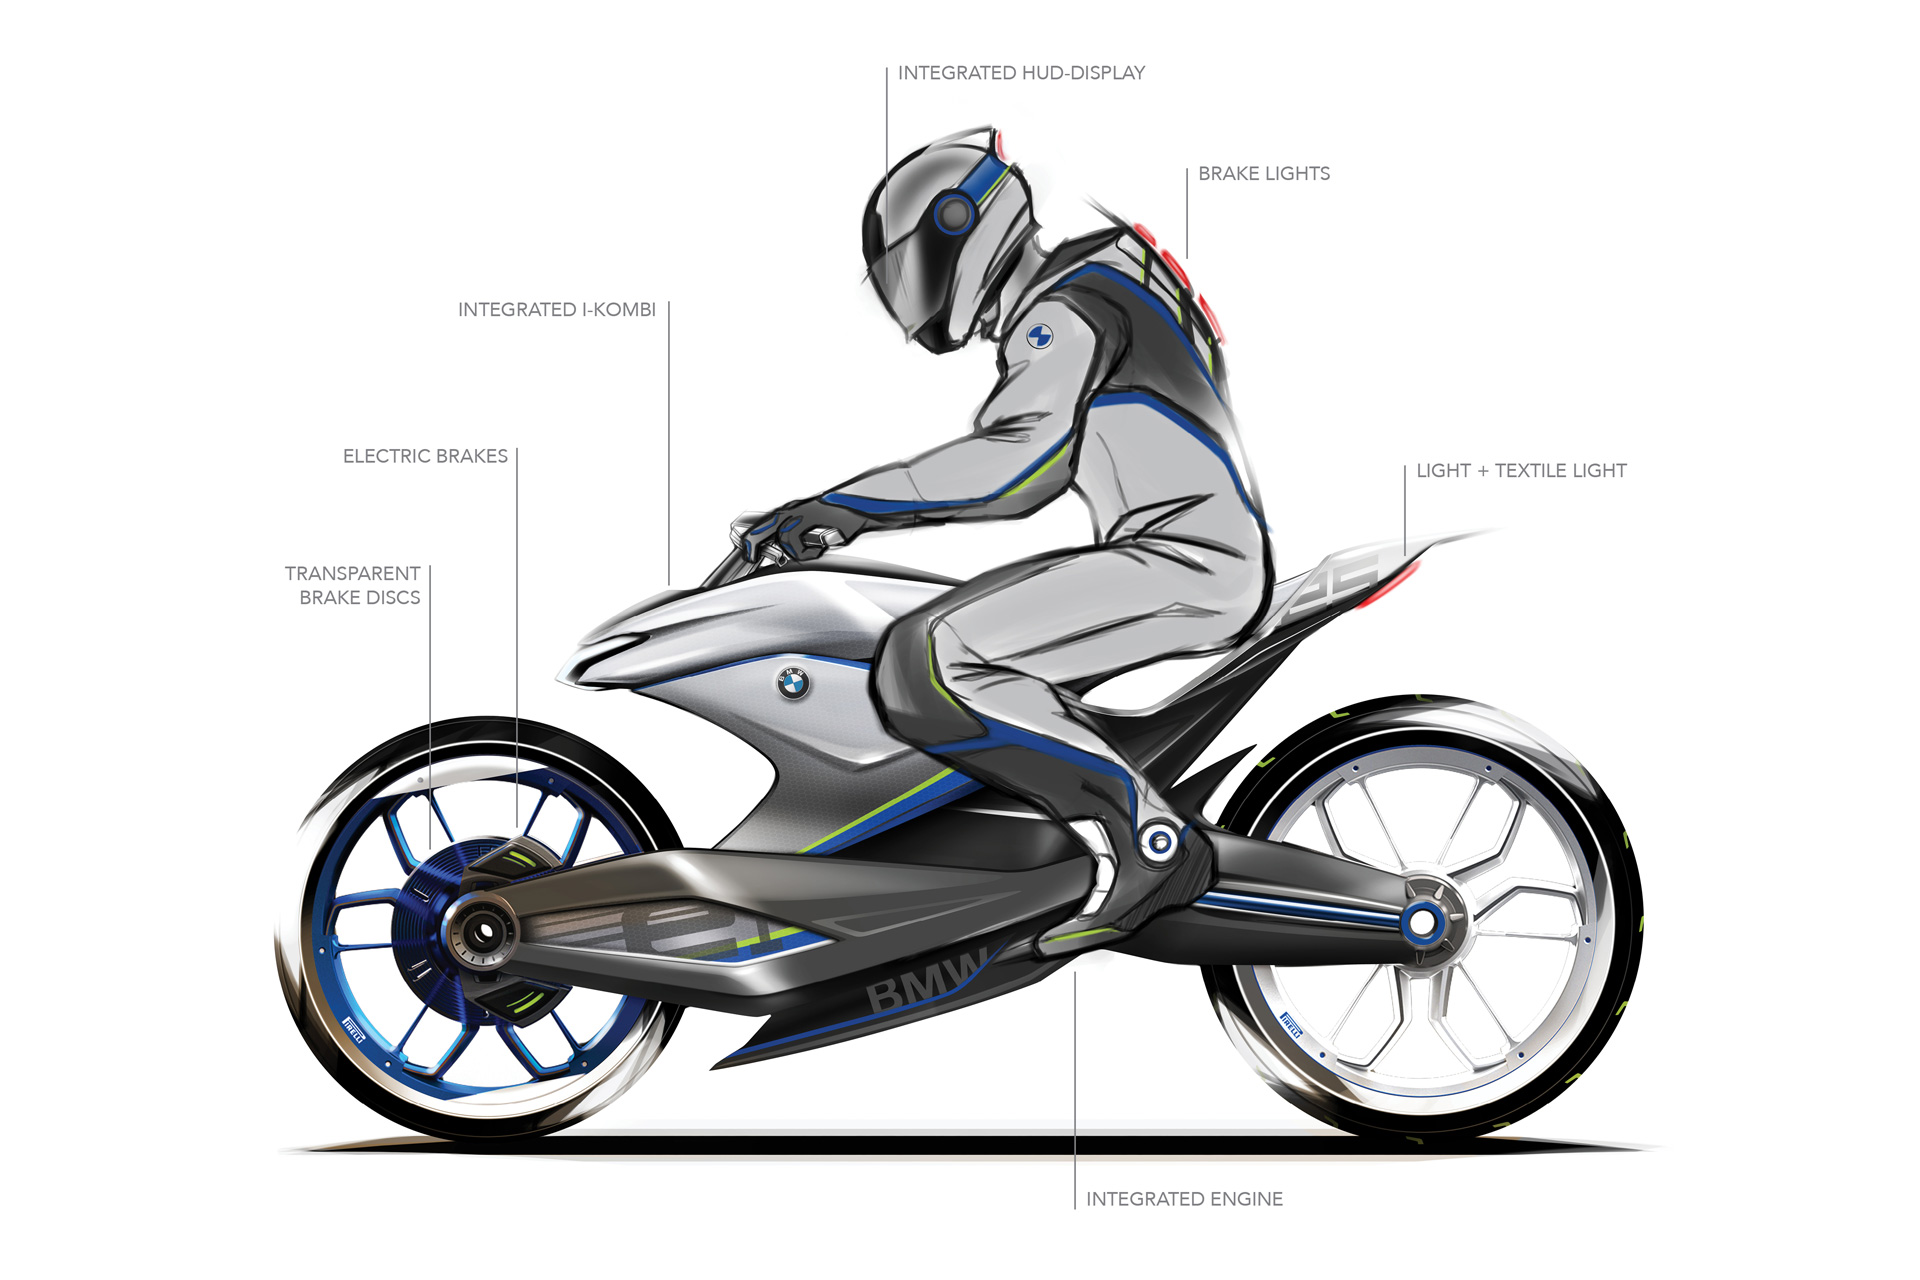 Sketch motorcycle BMW by Creative Wave